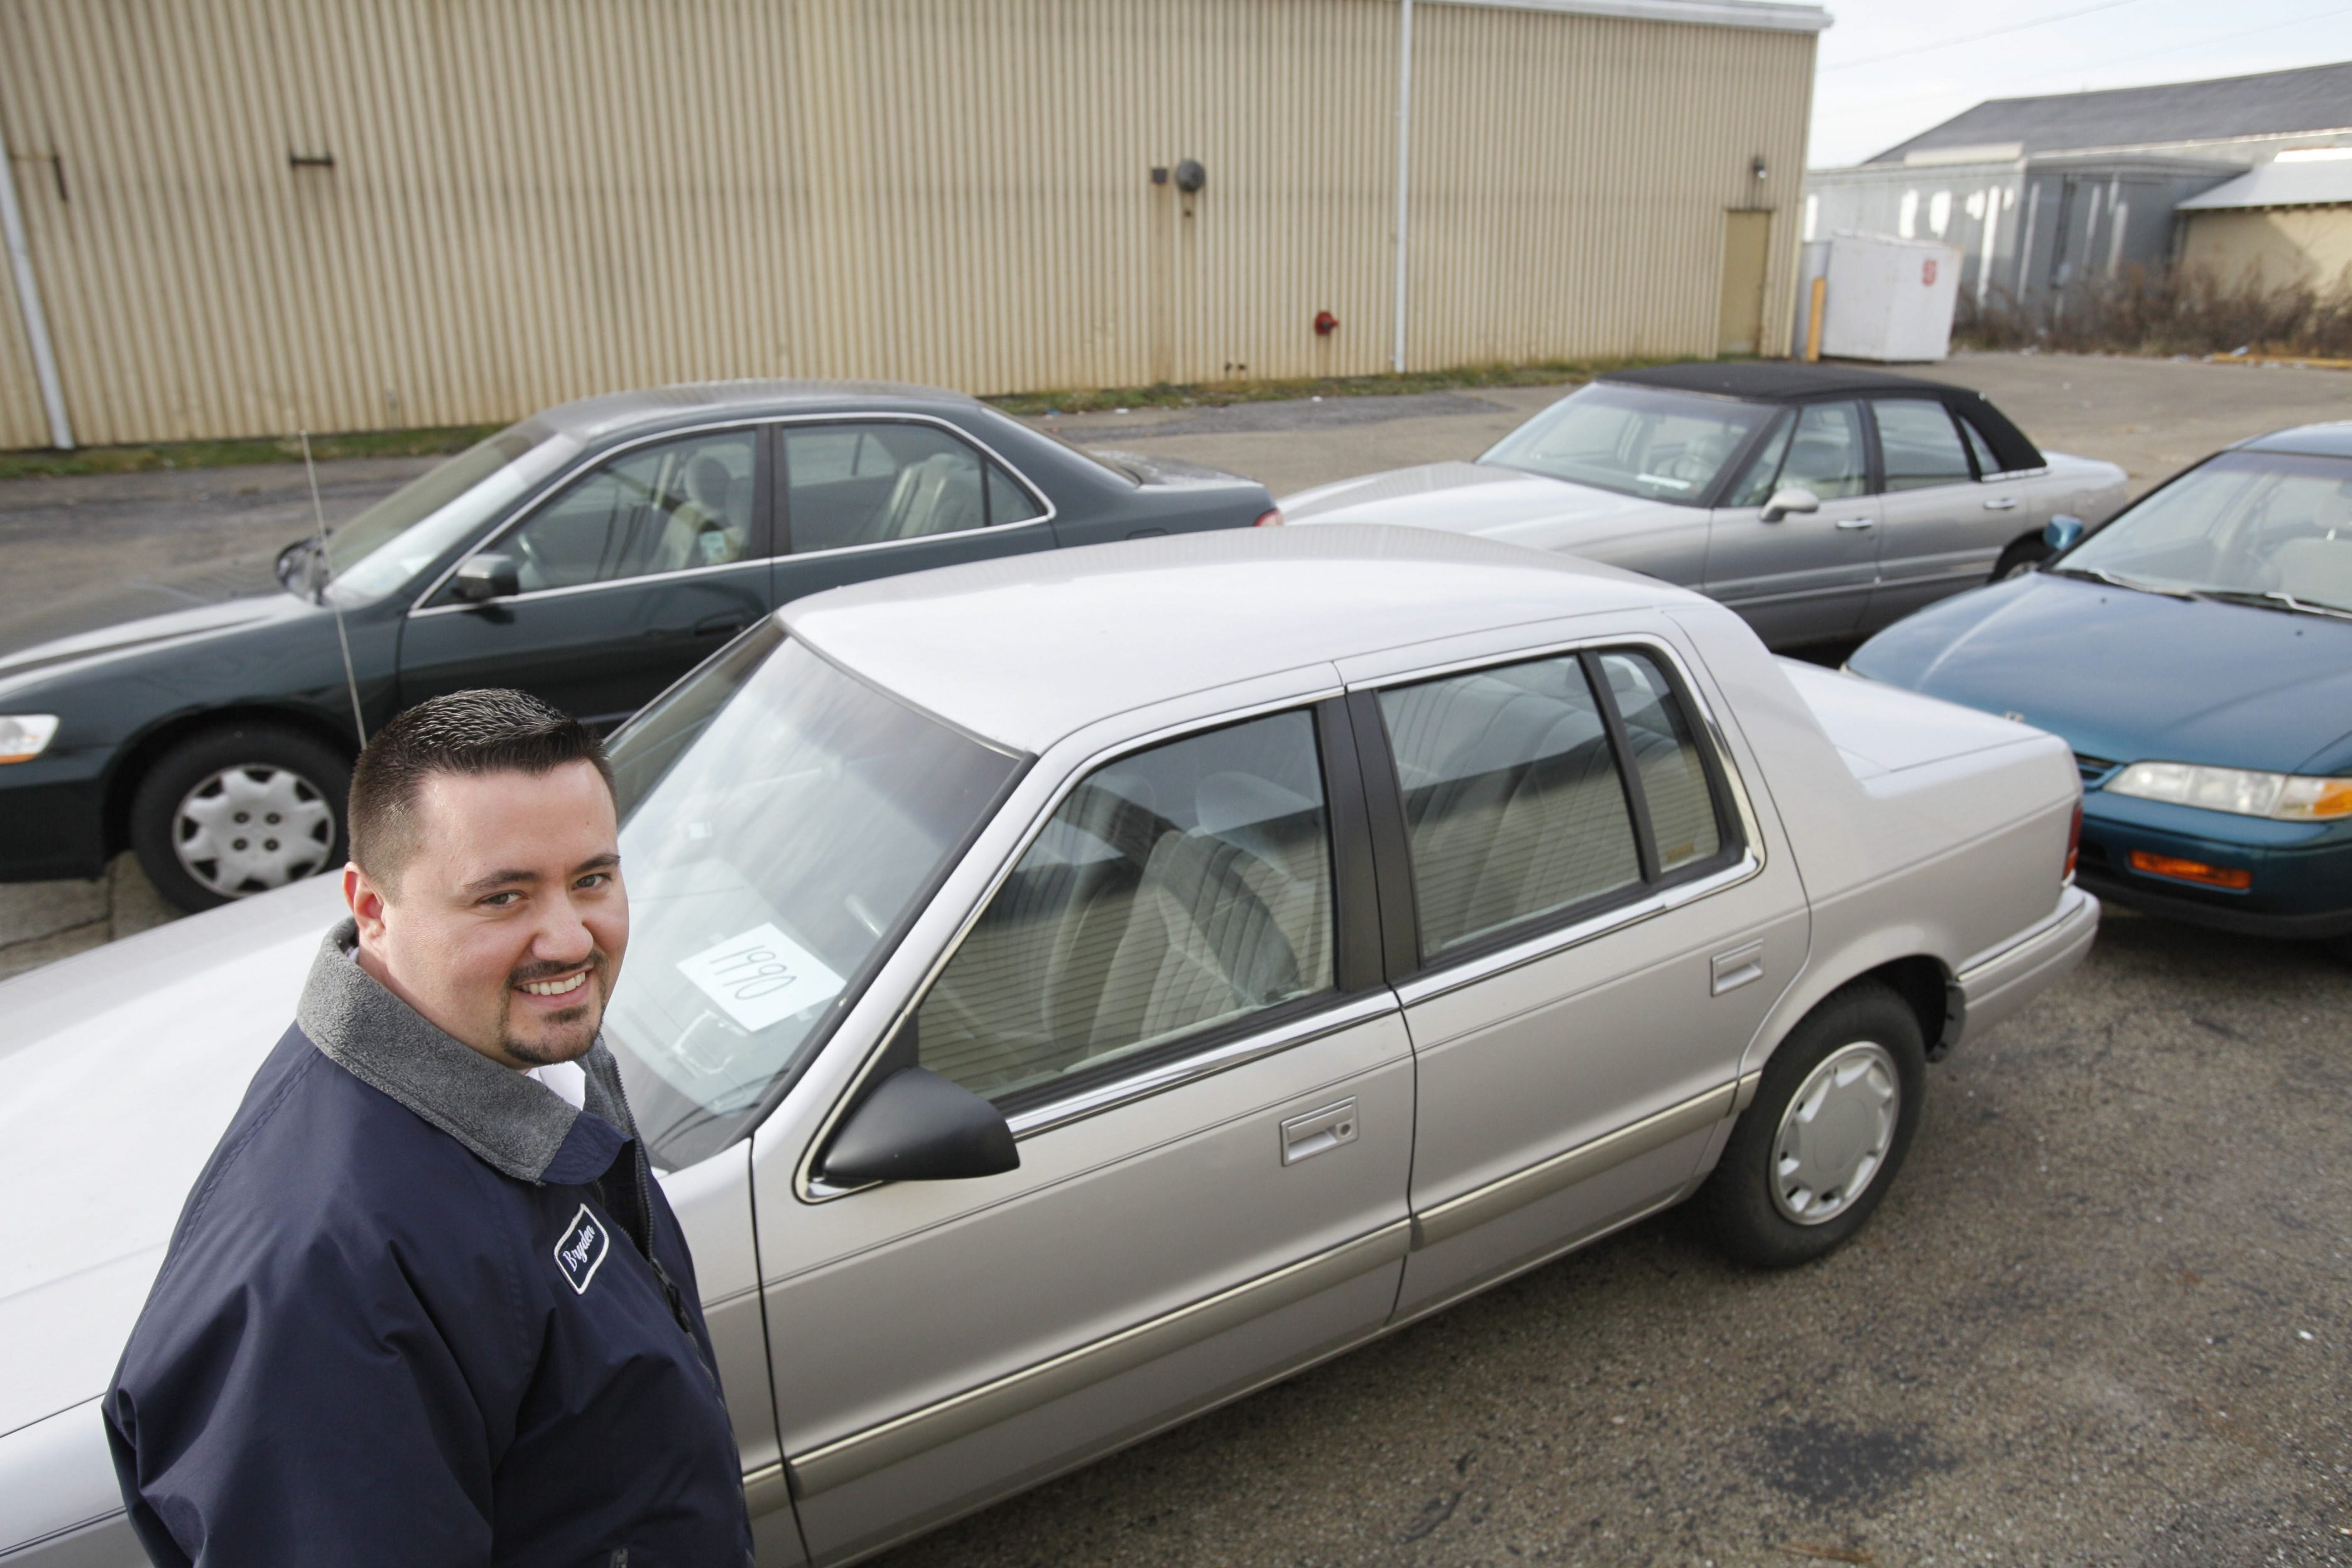 (Derek Gee/Buffalo News) Envoy Bryden Swires, administrator of the Salvation Army's Buffalo Adult Rehabilitation Center, with four automobiles that were donated to the agency that are sold in a silent auction, Tuesday, Nov. 20, 2012.